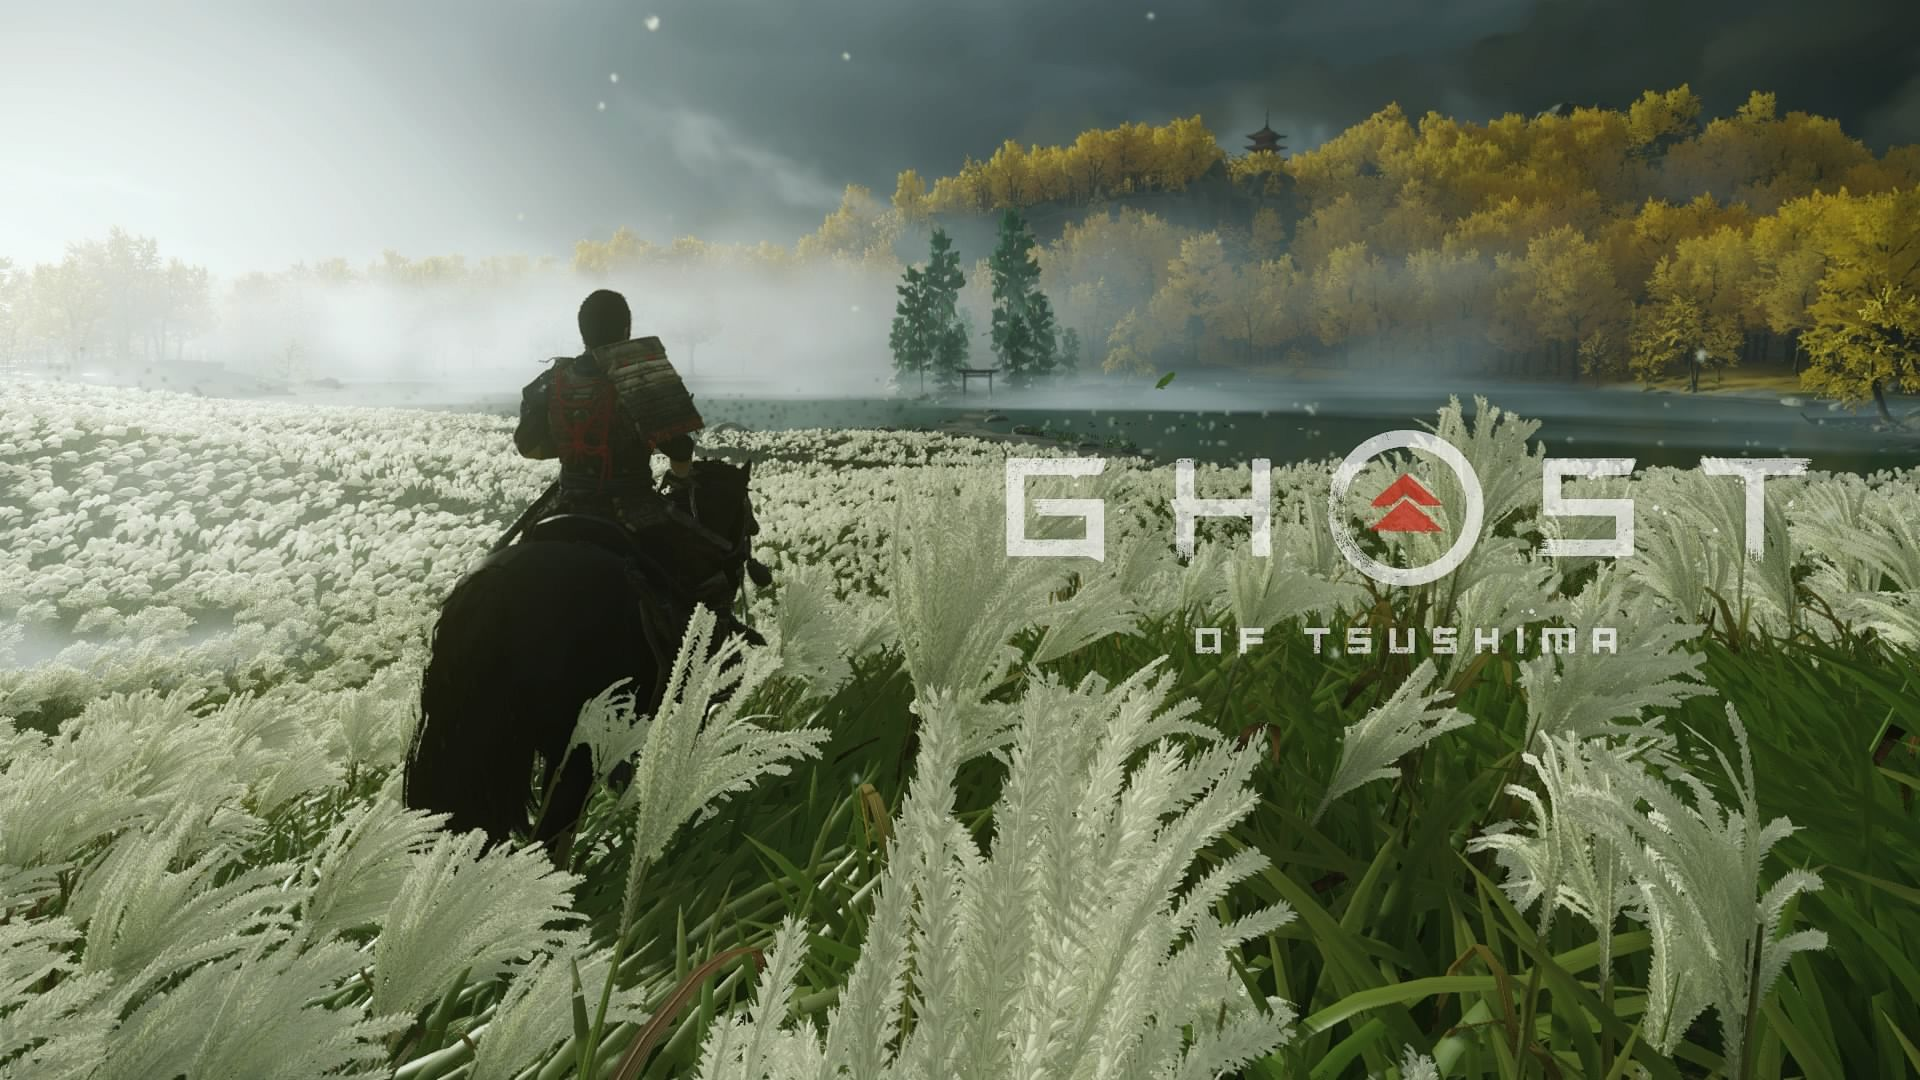 Ghost of Tsushima: Did you get this game as a gift? Discover all our guides